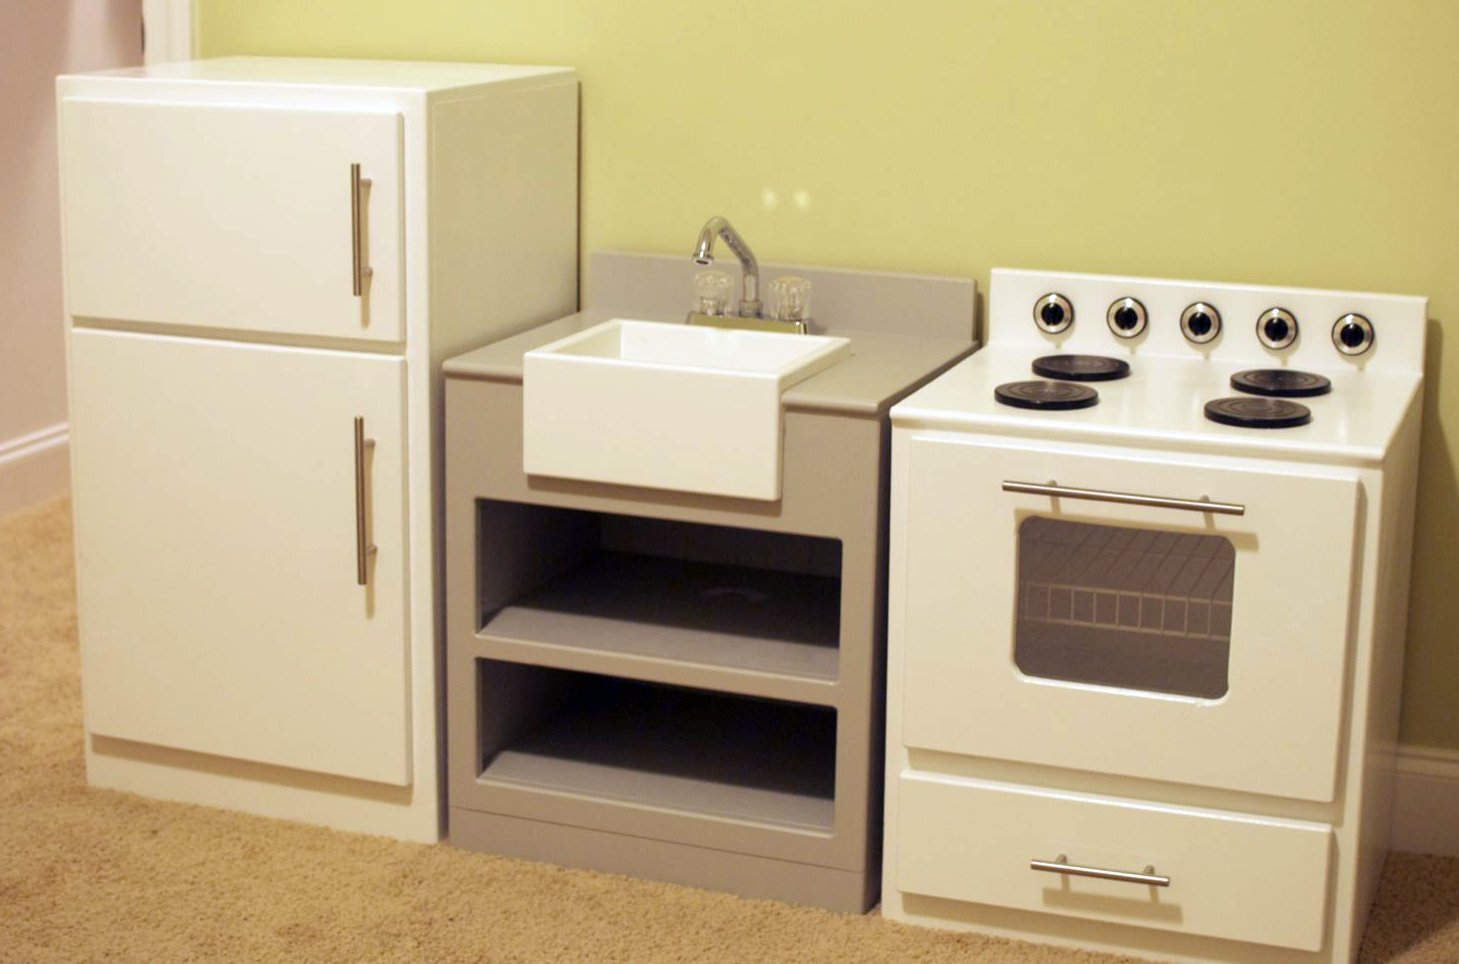 How To Build A Wood Farmhouse Kitchen Sink